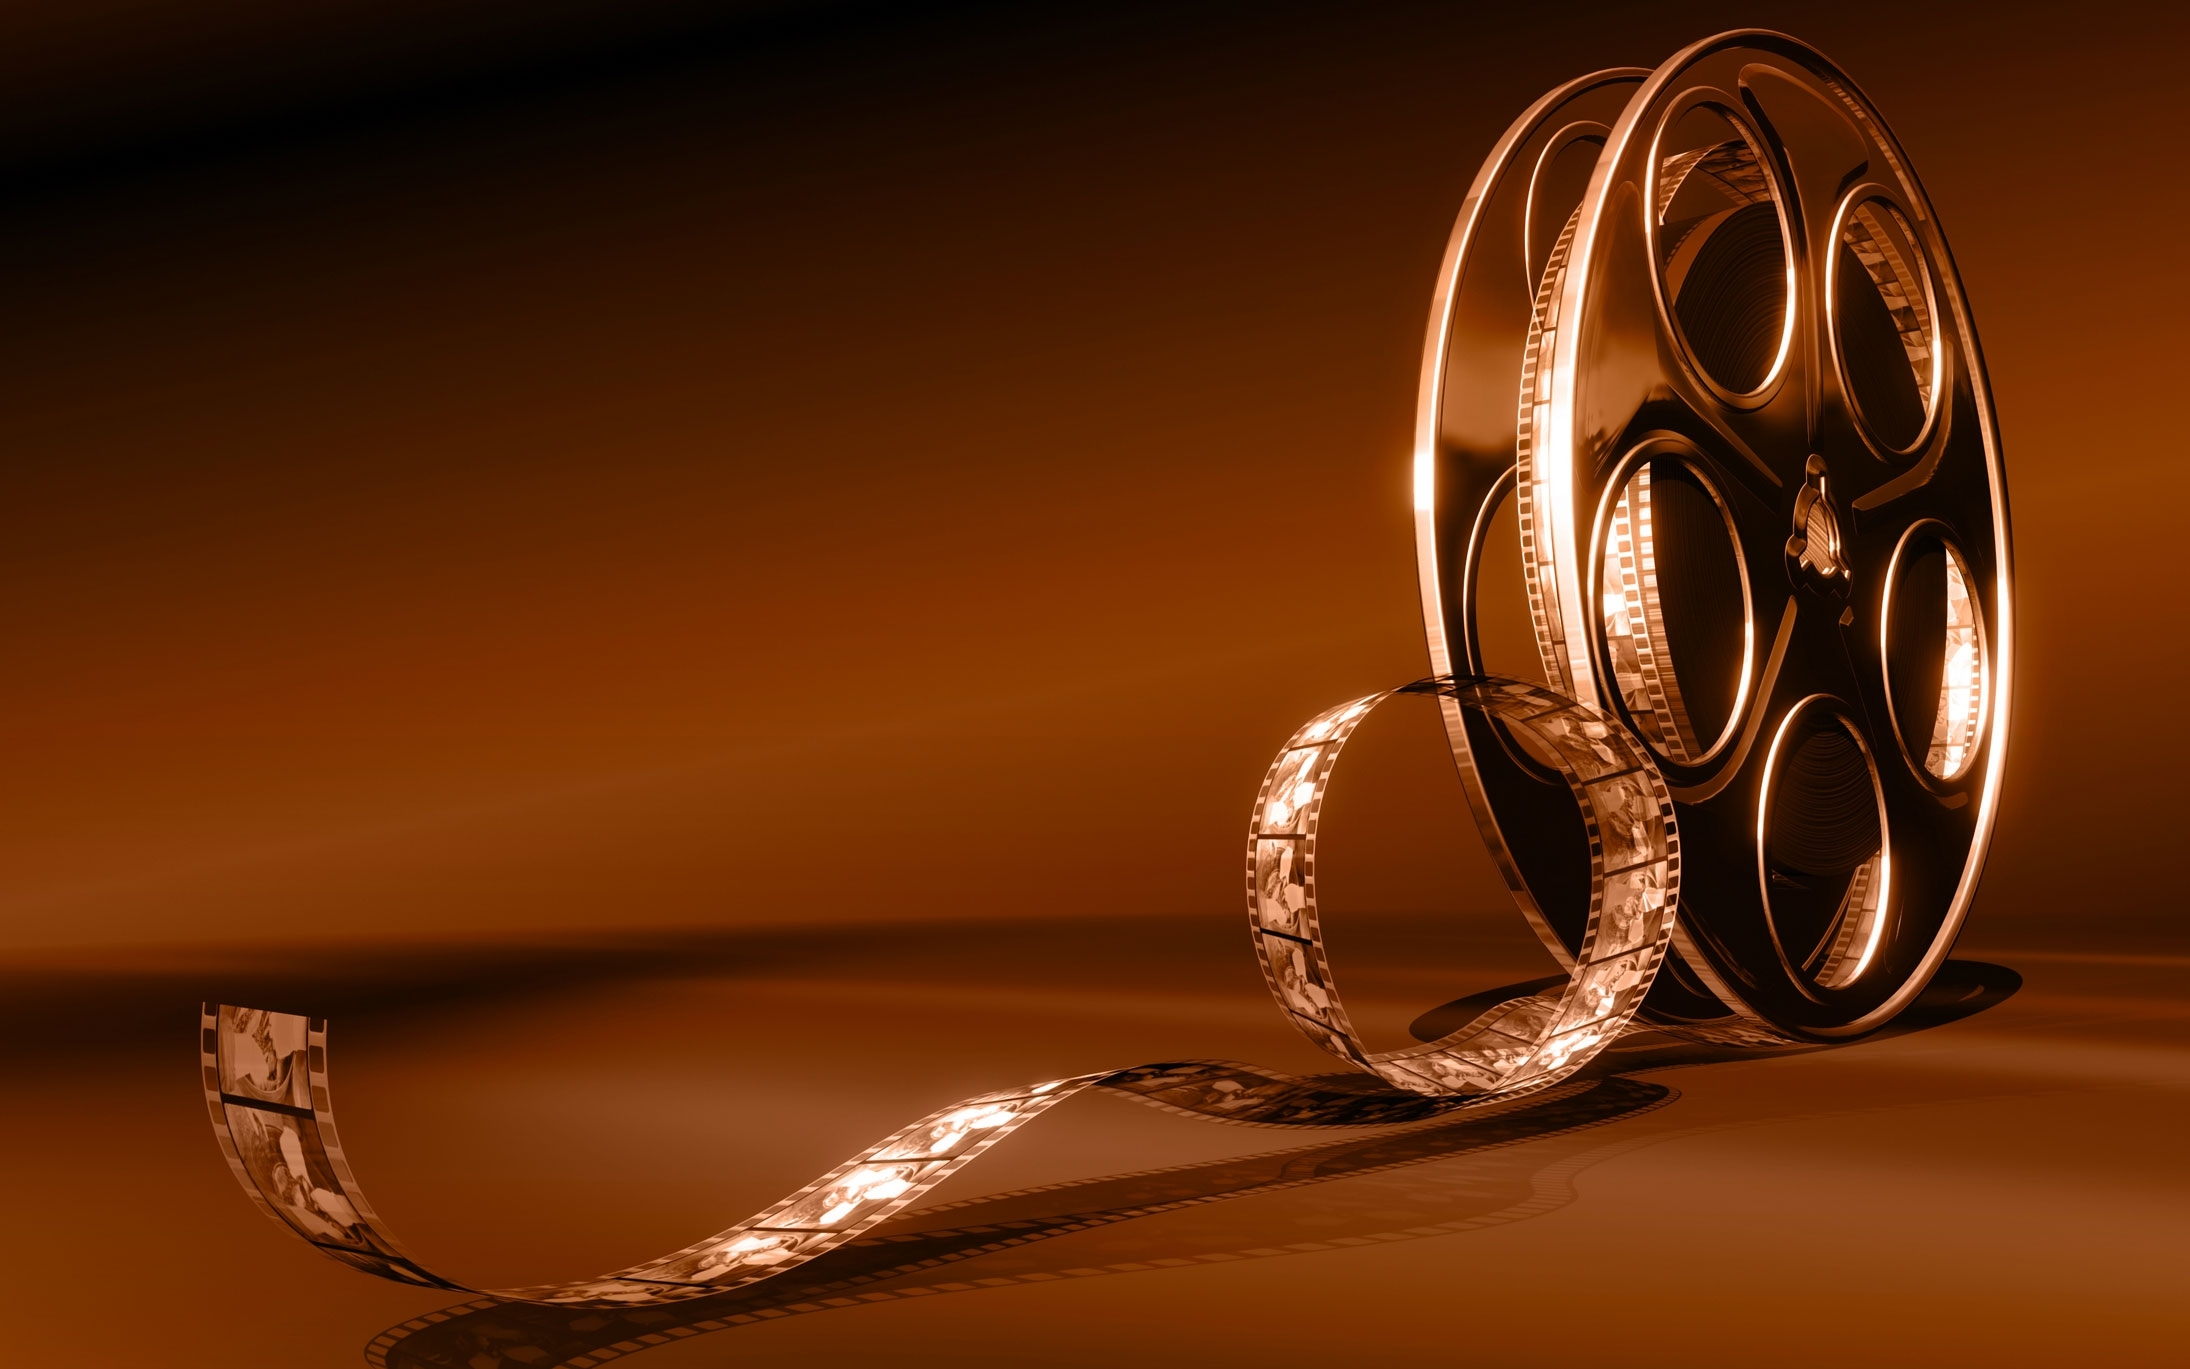 film-reel-desktop-background-filmreel1 -